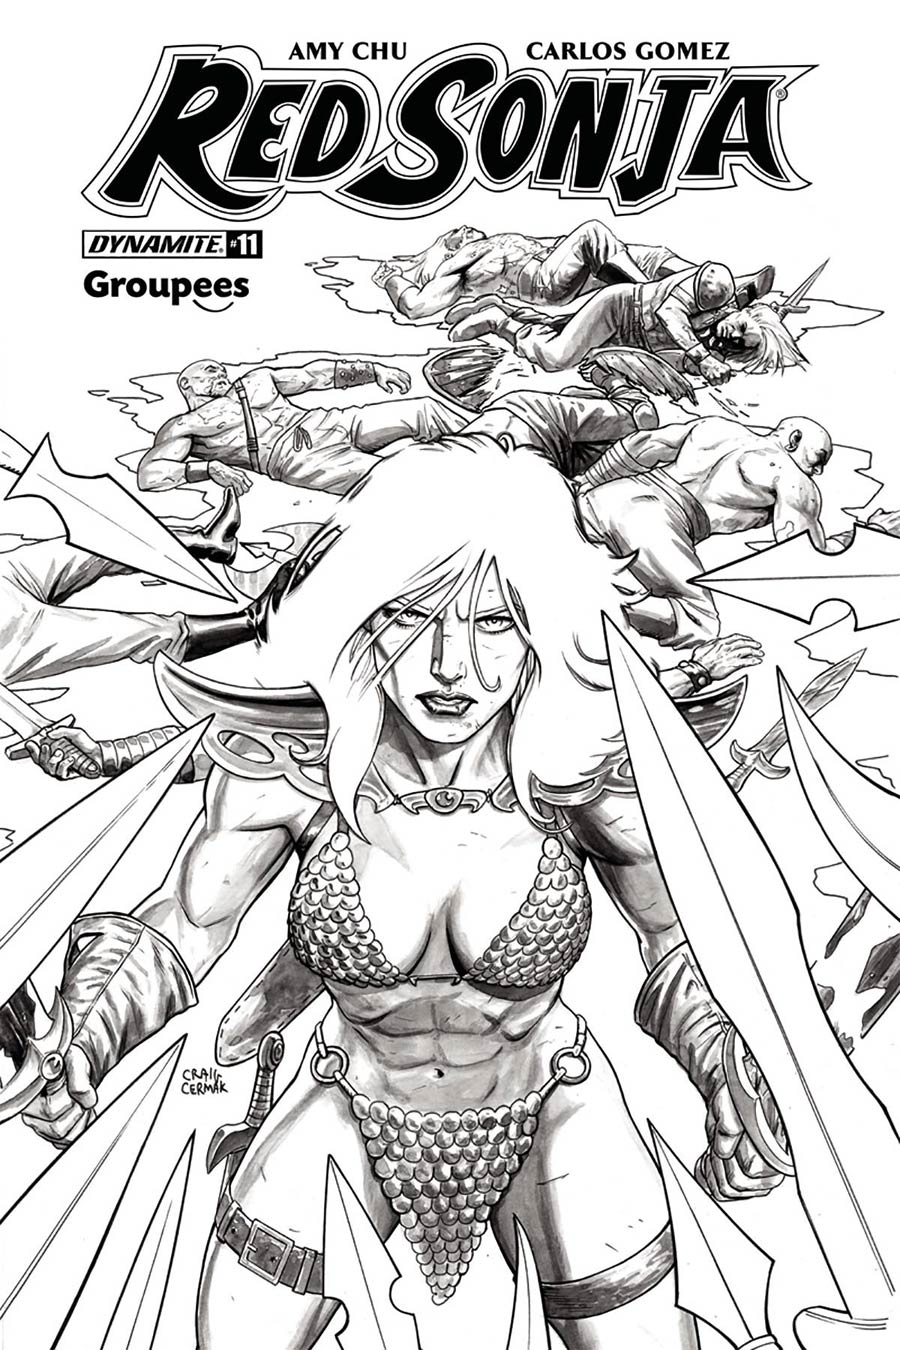 Red Sonja Vol 7 #11 Cover J Groupees Exclusive Craig Cermak Black & White Variant Cover